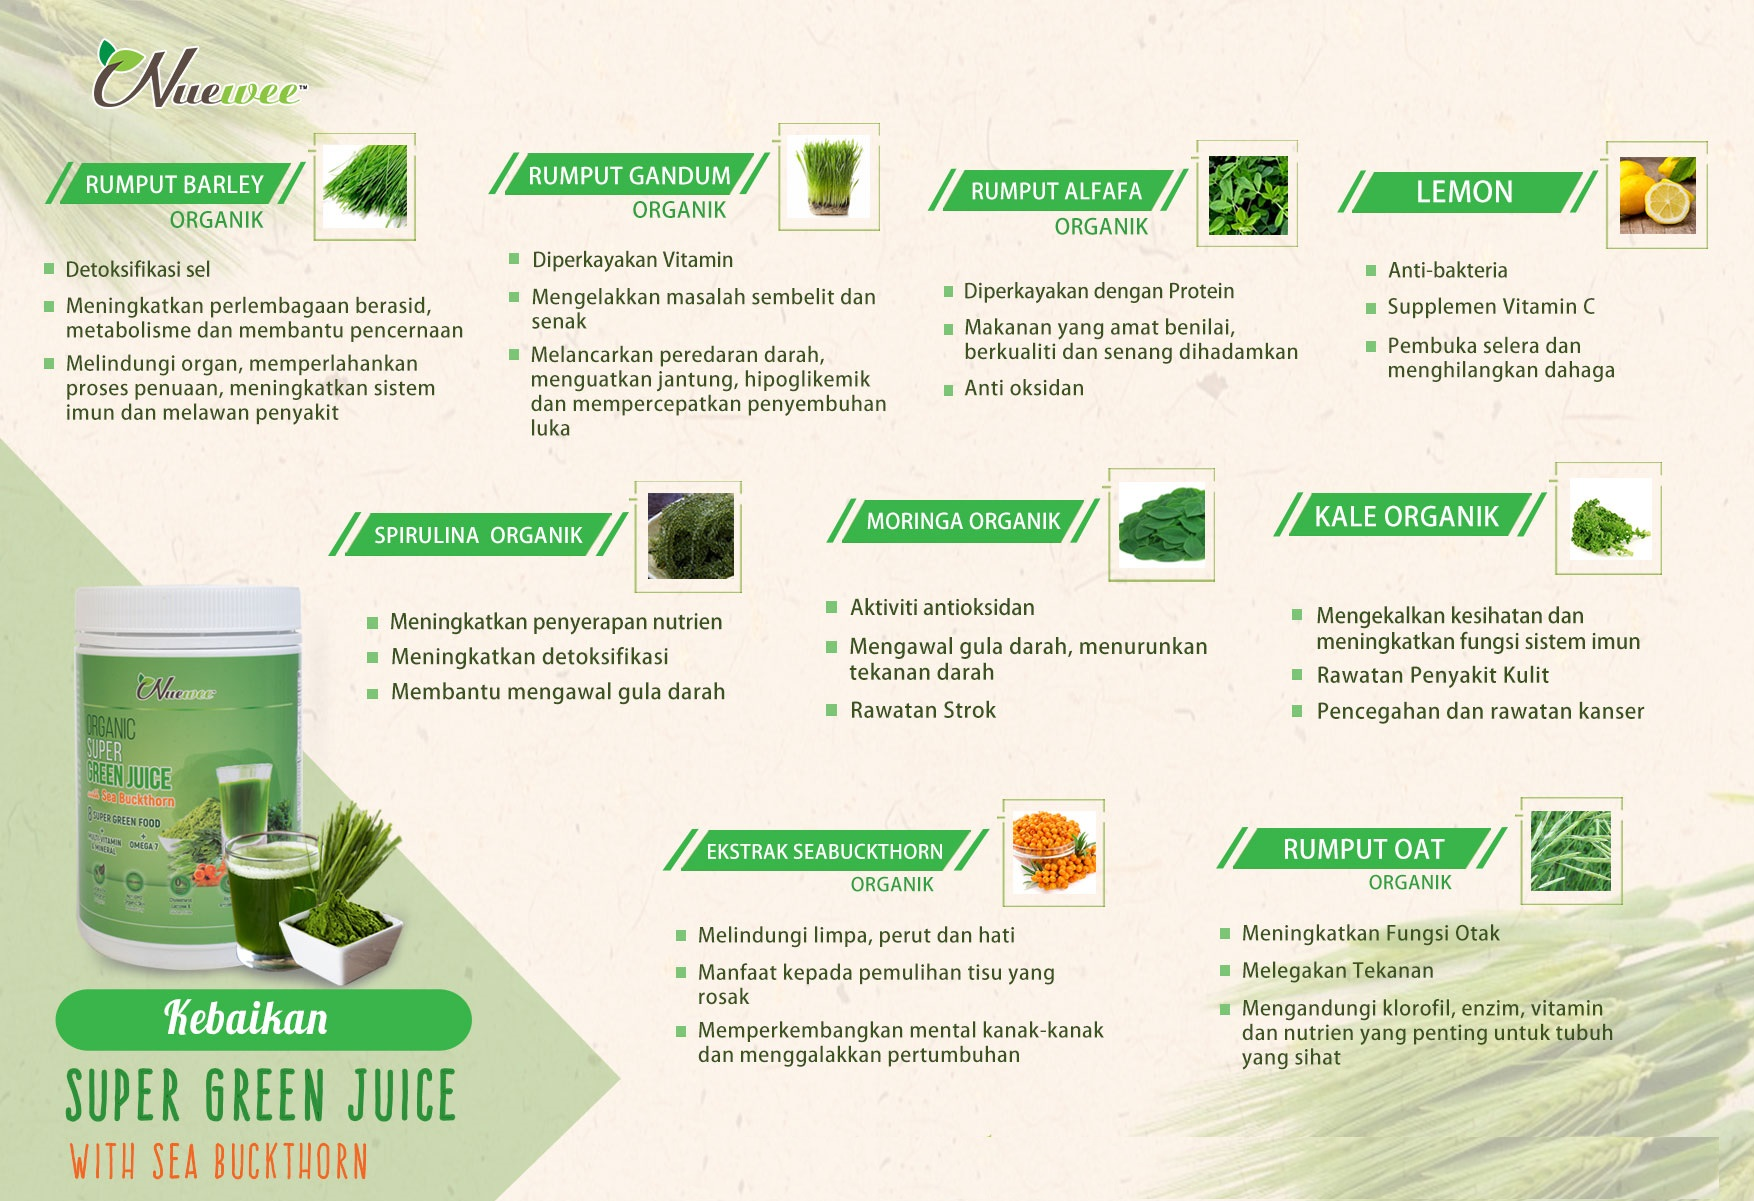 M Ingredients of Nuewee Organic Super Green Juice with Sea Buckthorn.jpg